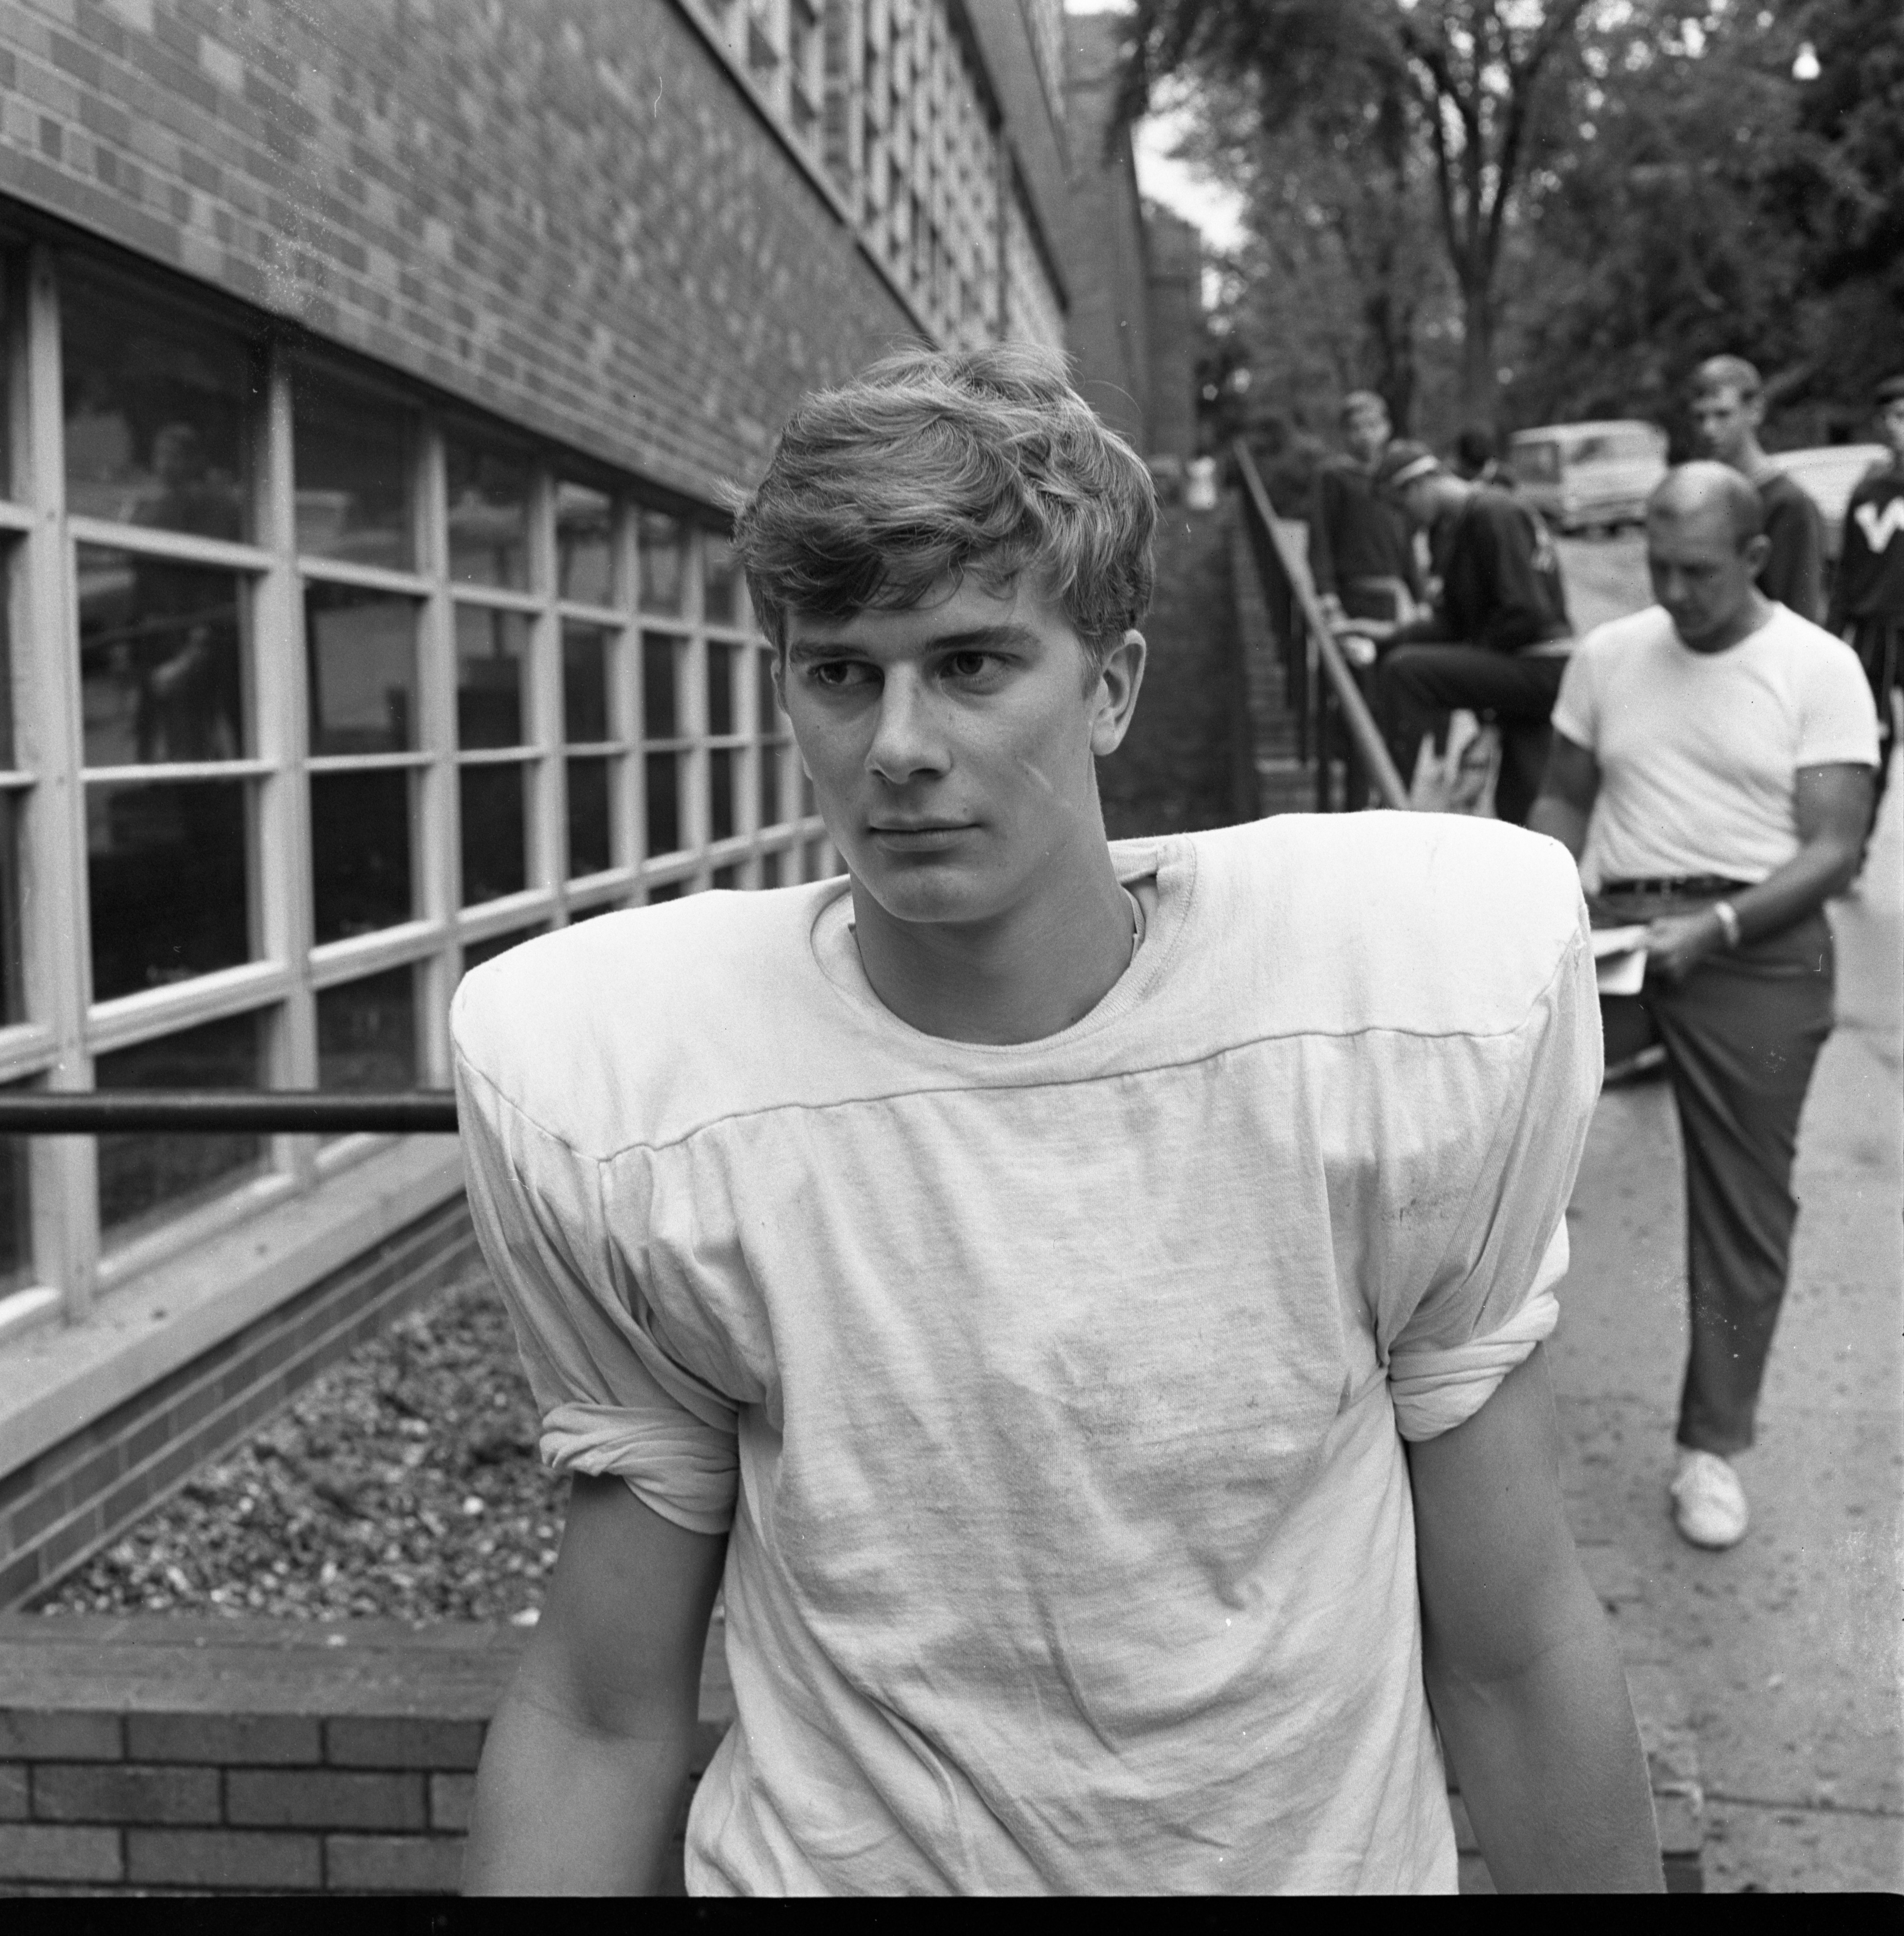 Bruce Otwell - St. Thomas High School Football Team, October 1968 image